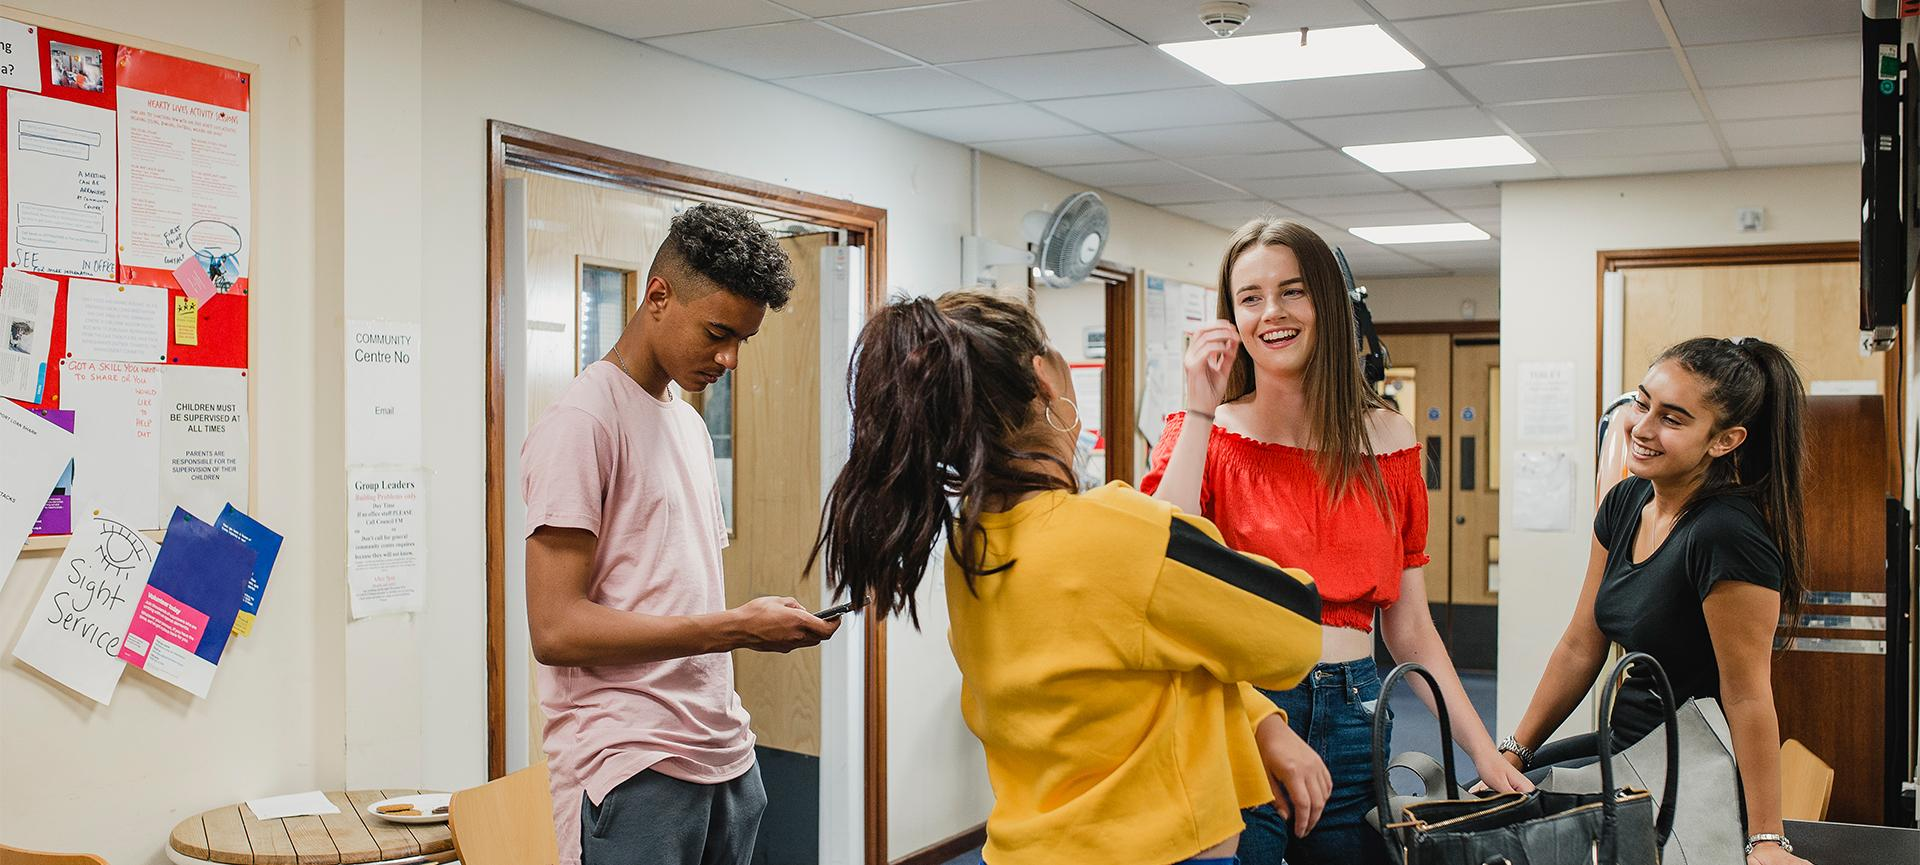 Four teenagers hanging out talking and smiling in a youth centre